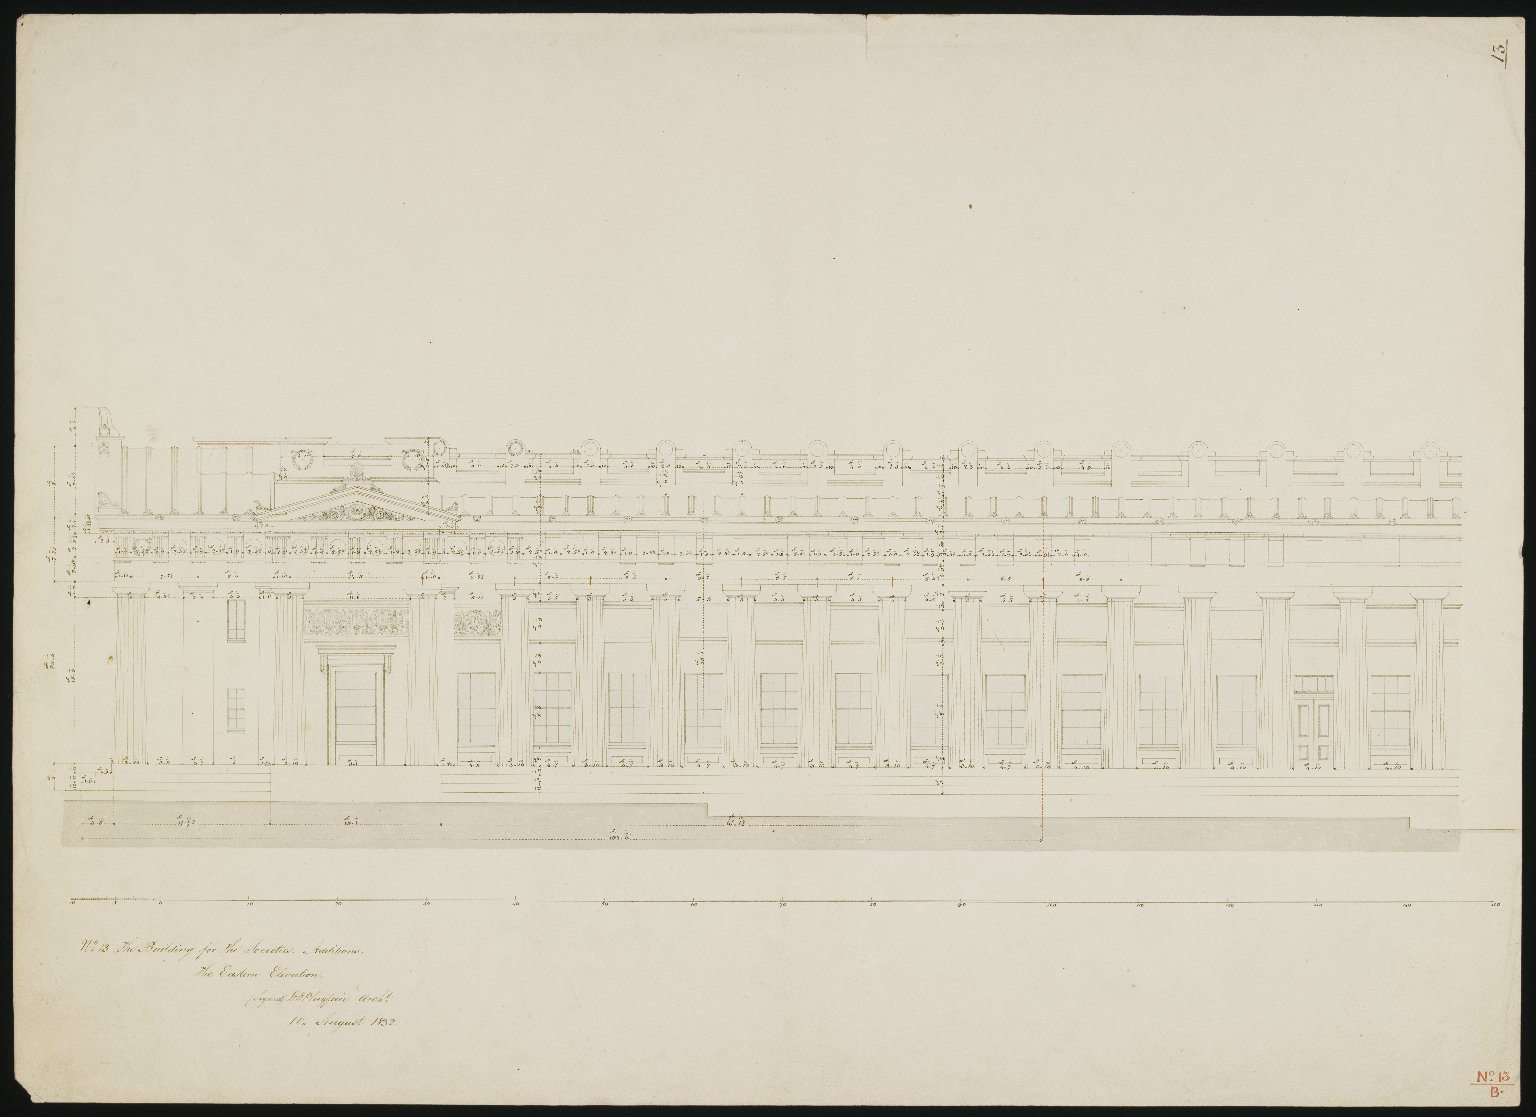 The Building for the Societies, the Eastern Elevation, 1832, No.13/B